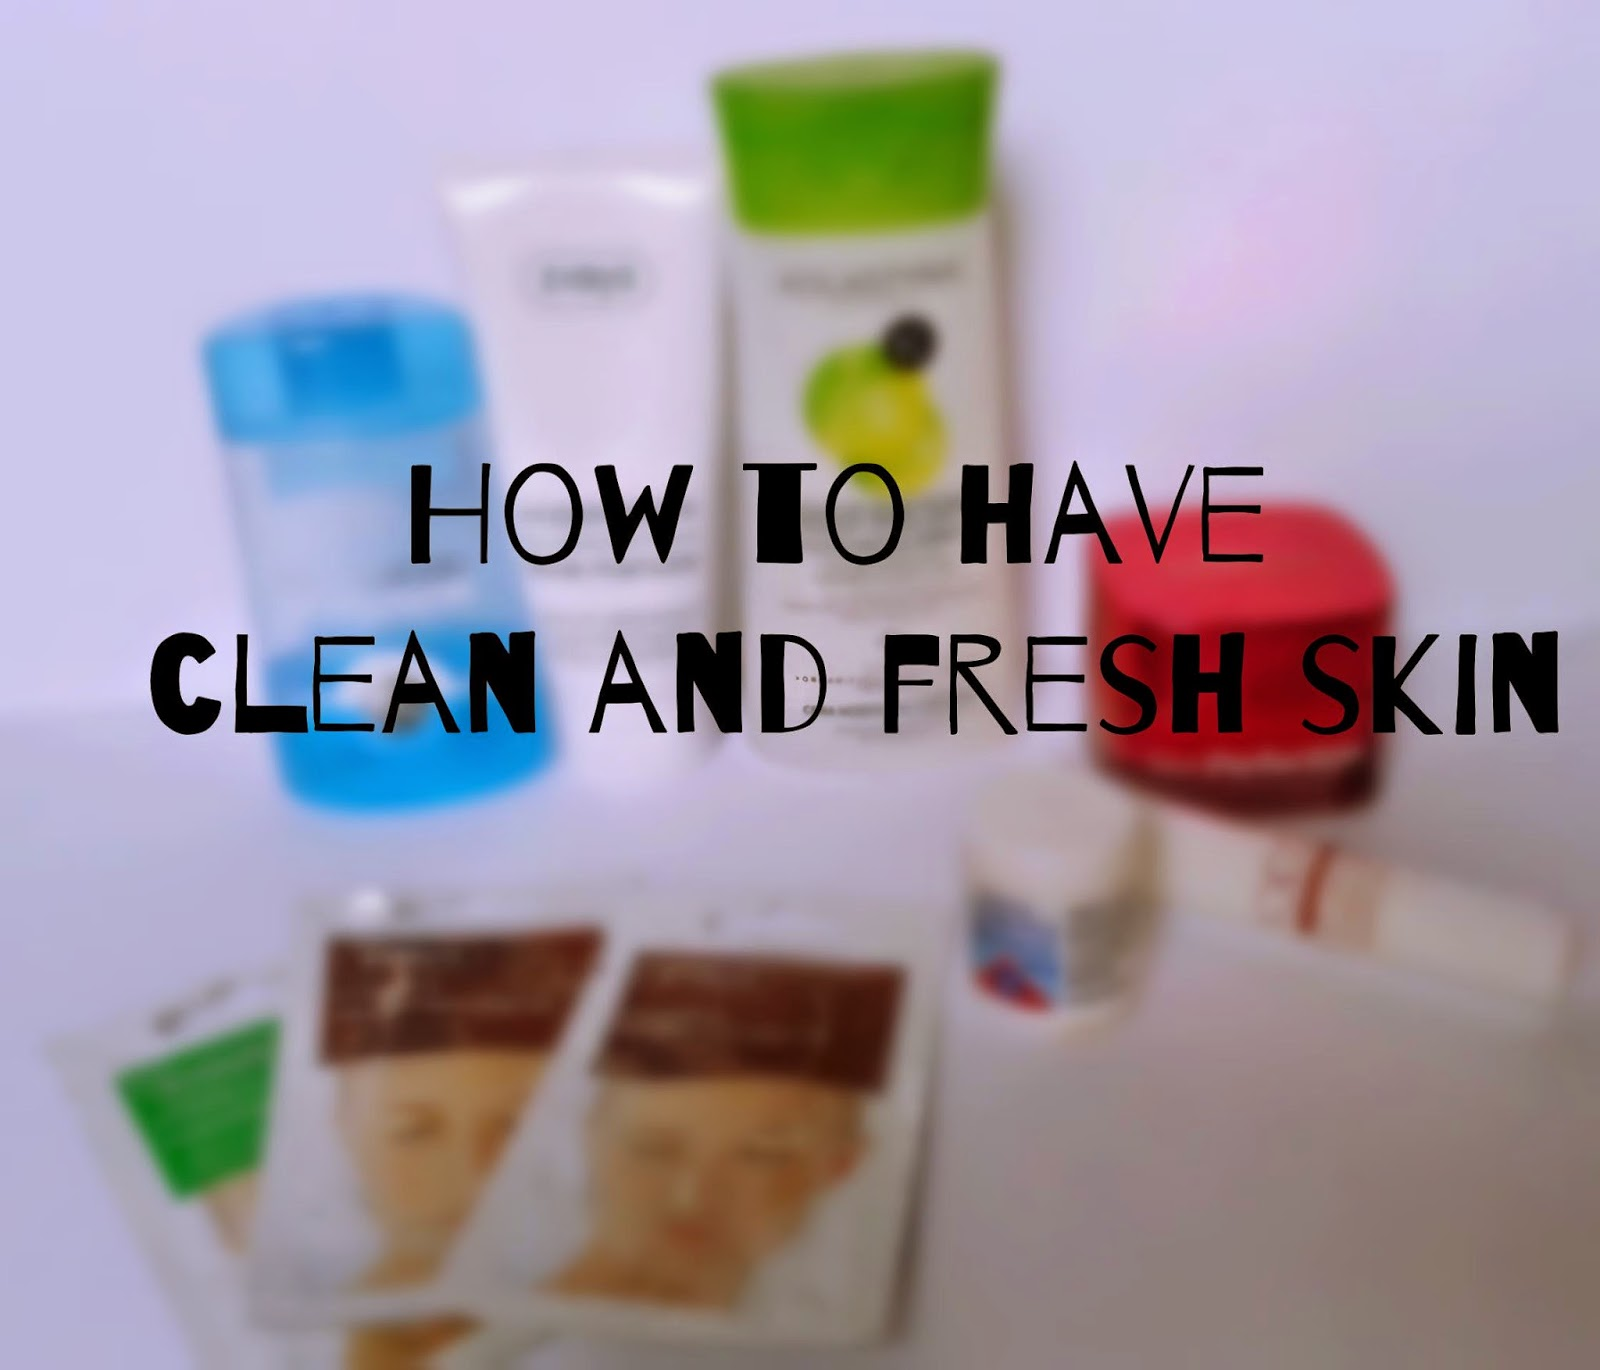 How to have clean and fresh skin